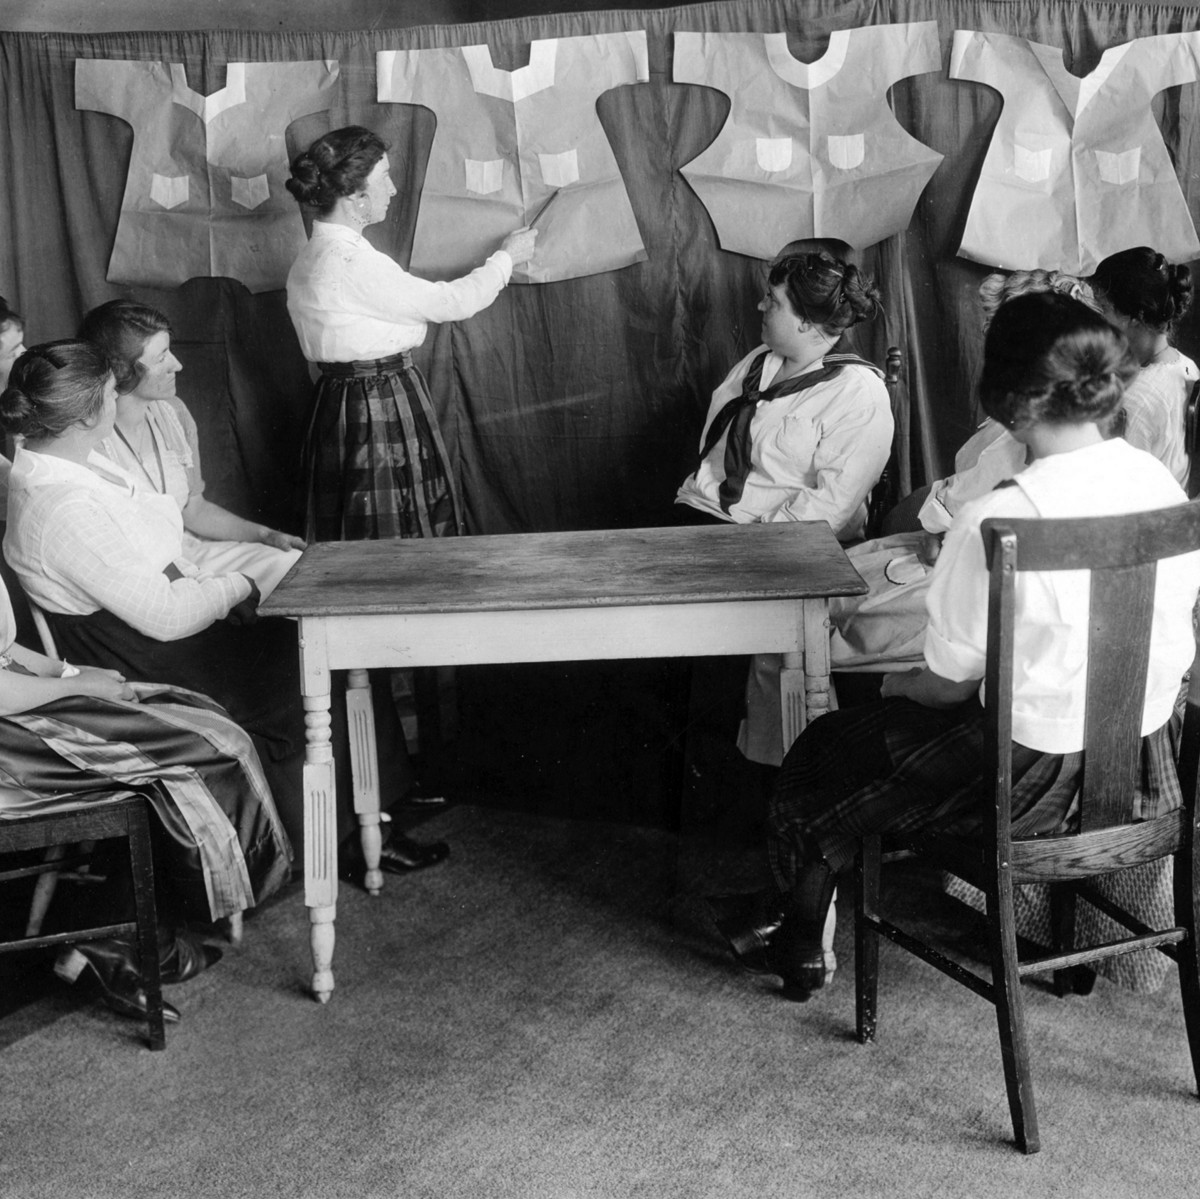 Photos: Before it was for slackers, Home Economics fostered trailblazing female scientists